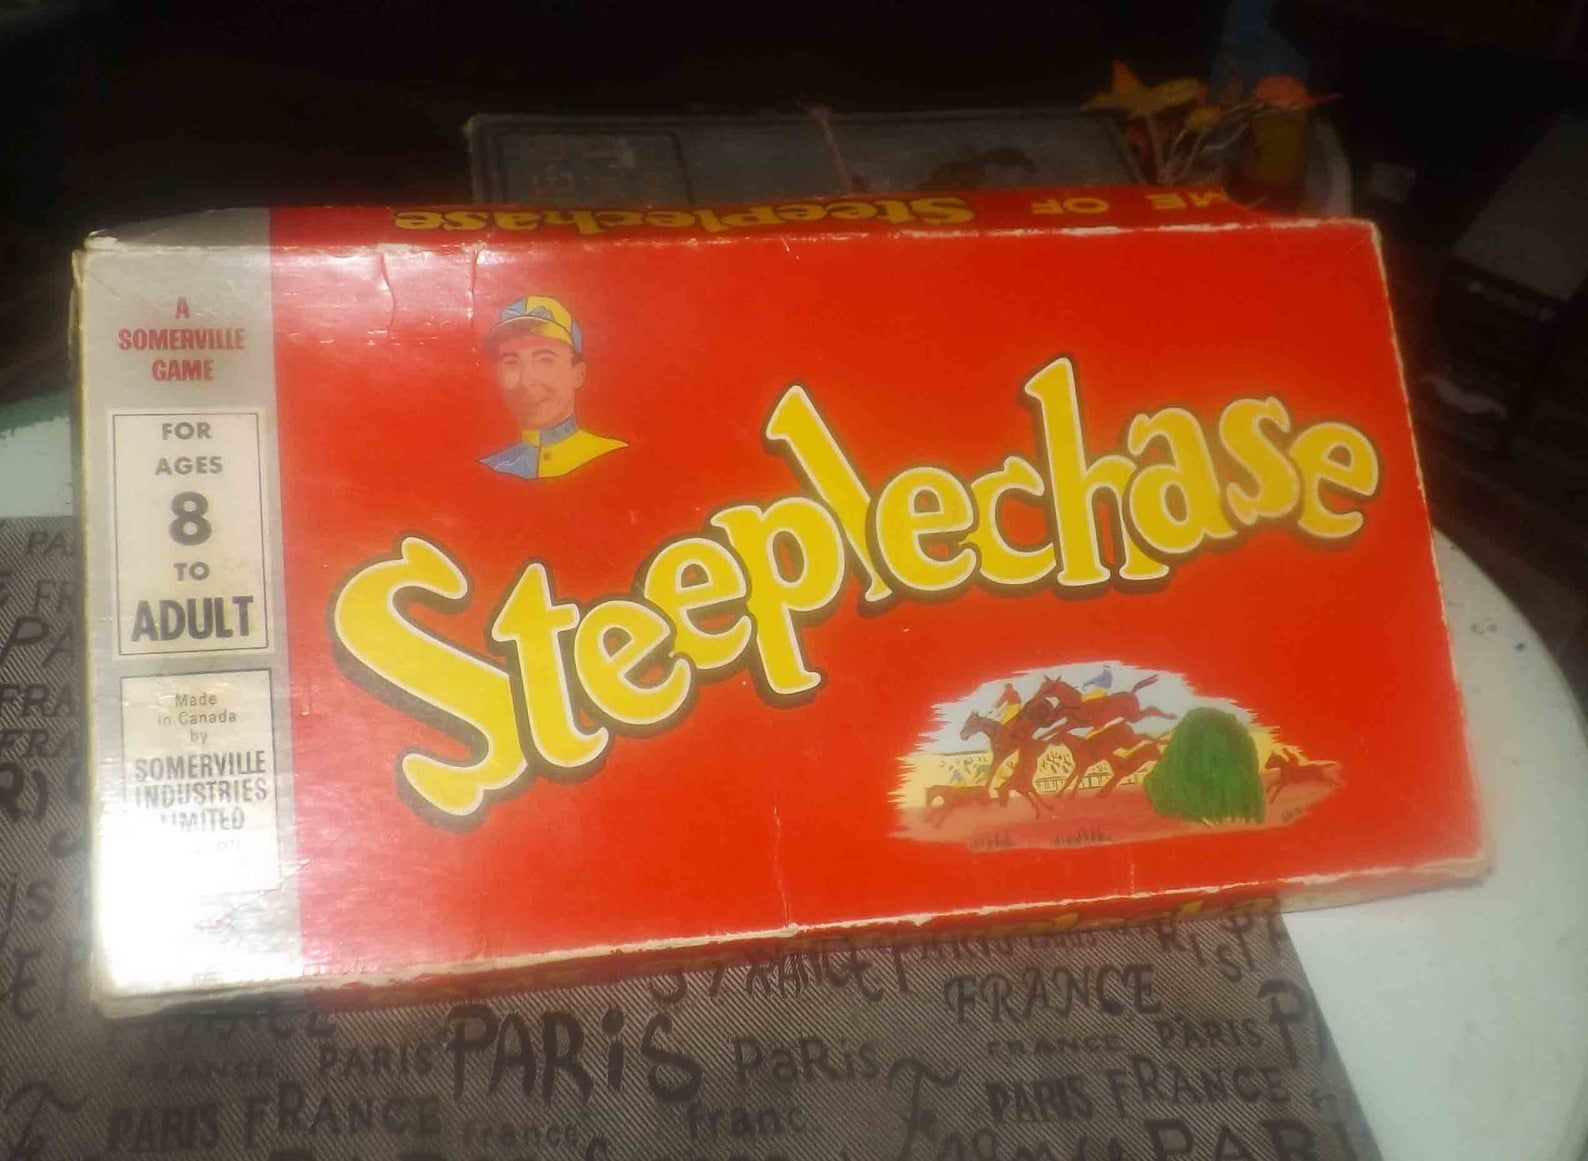 Midcentury (1950s) Steeplechase Horse Racing board game